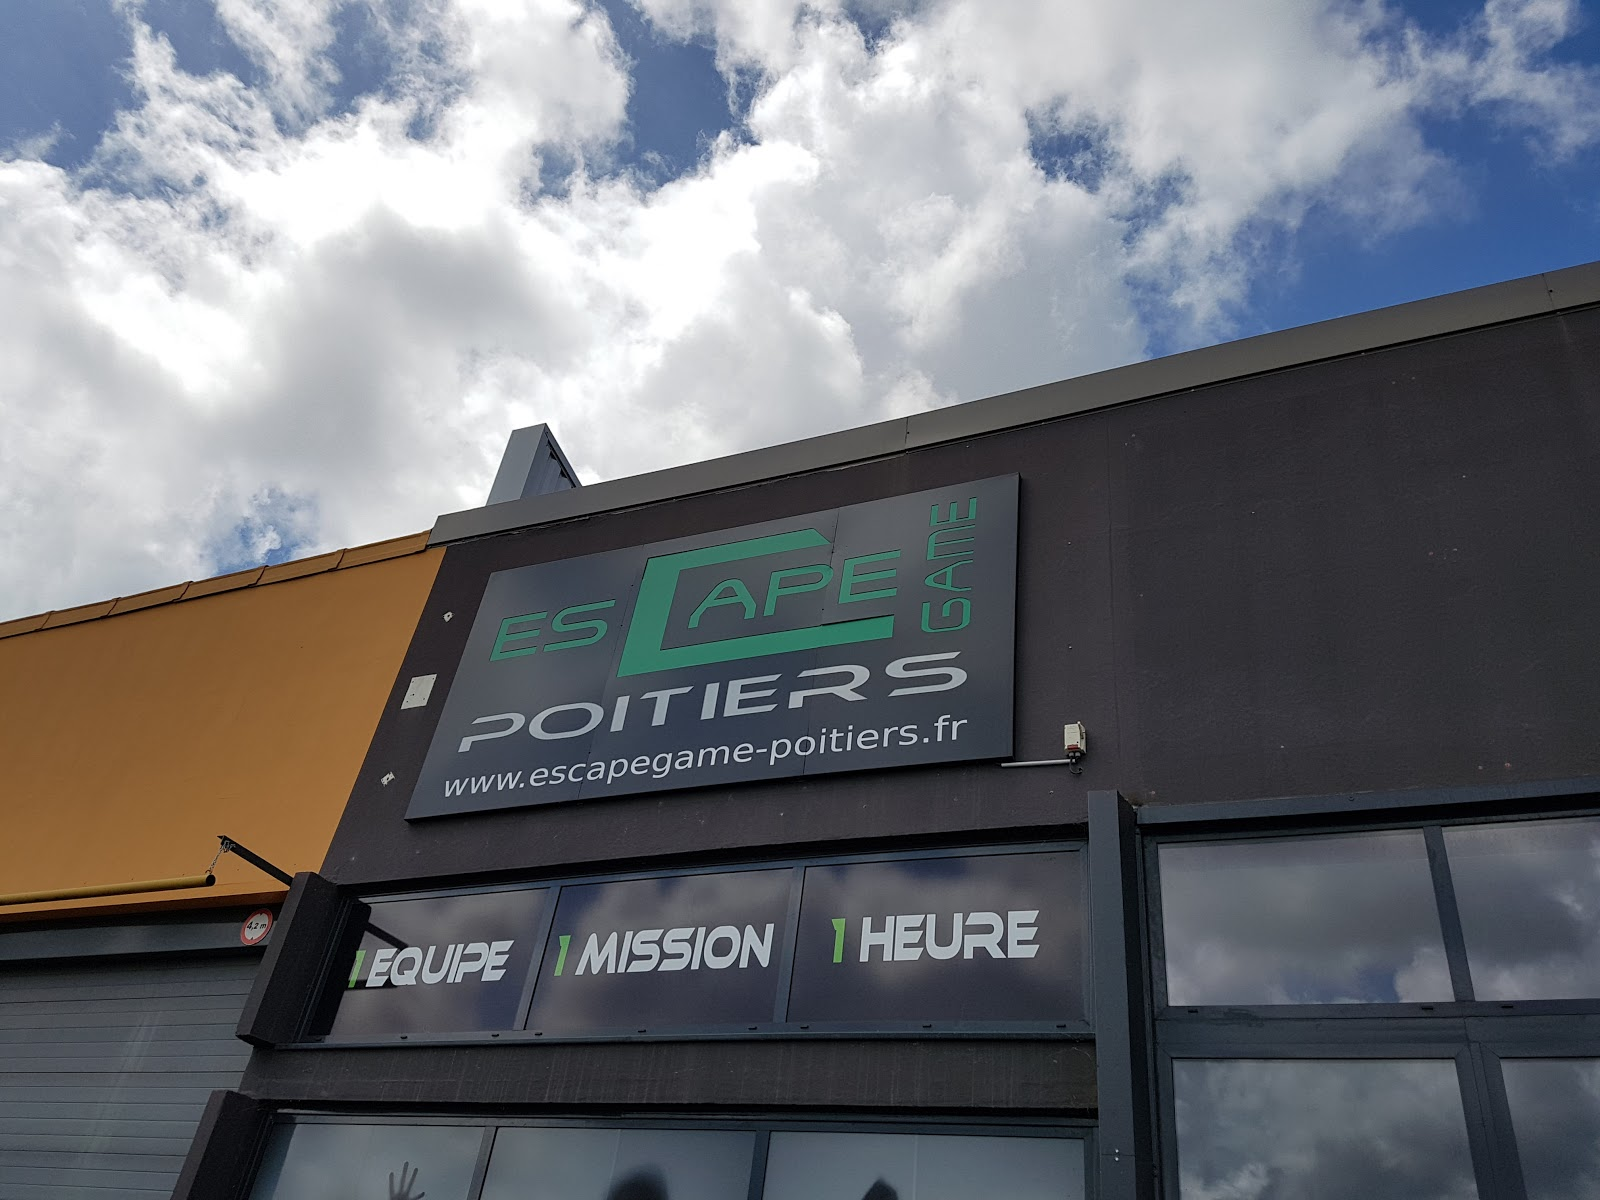 Ambiance Et Style Poitiers visit escape game poitiers on your trip to migne-auxances or